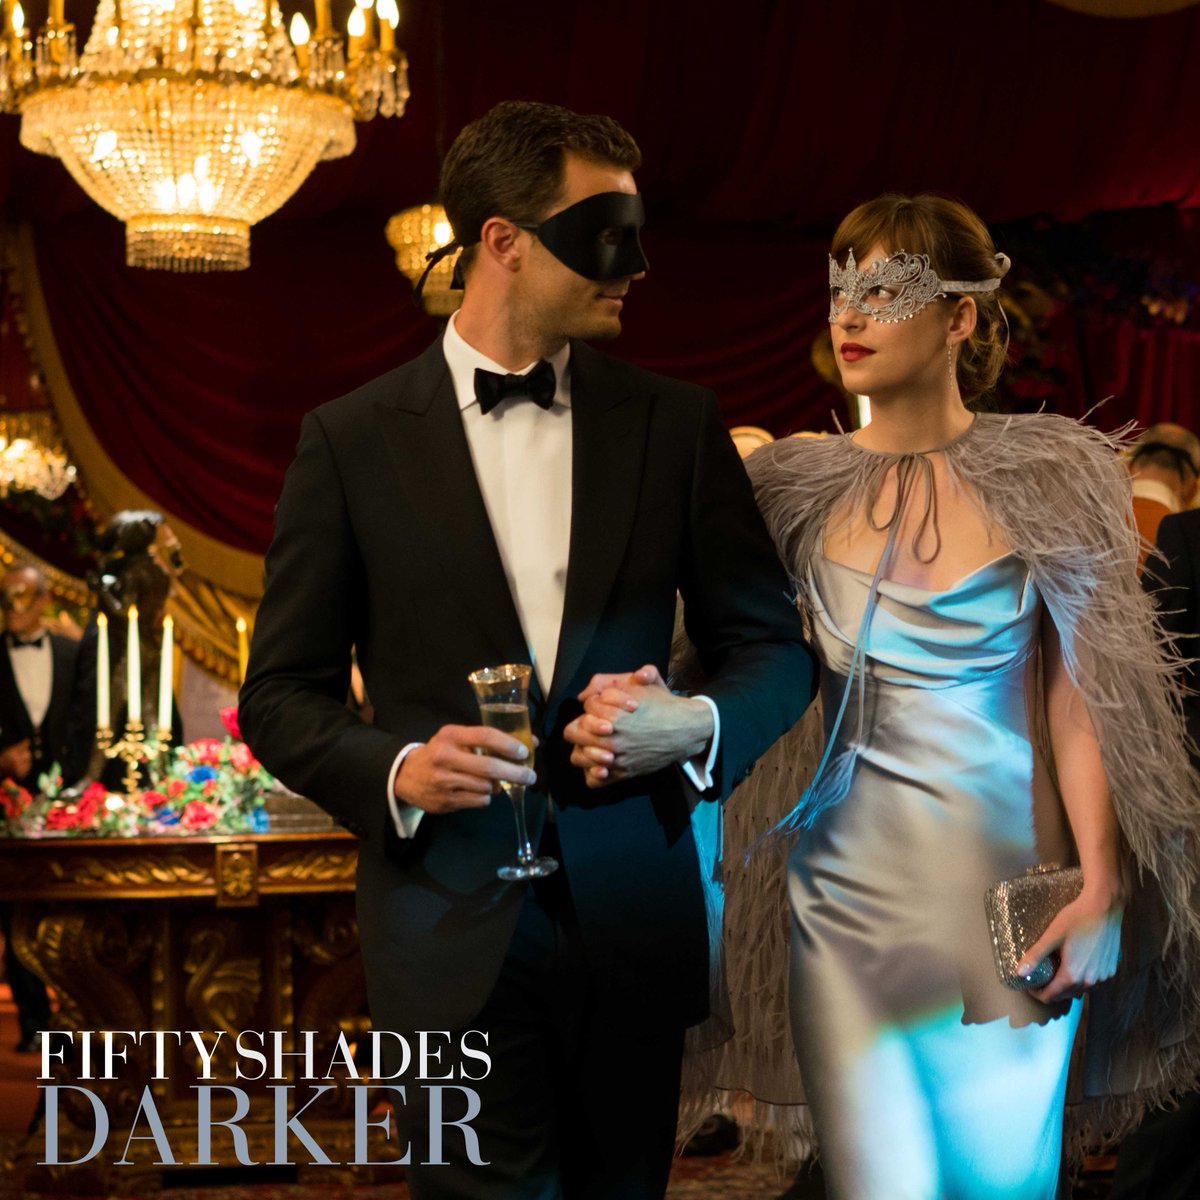 """I want you back."" On February 10, go #FiftyShadesDarker."